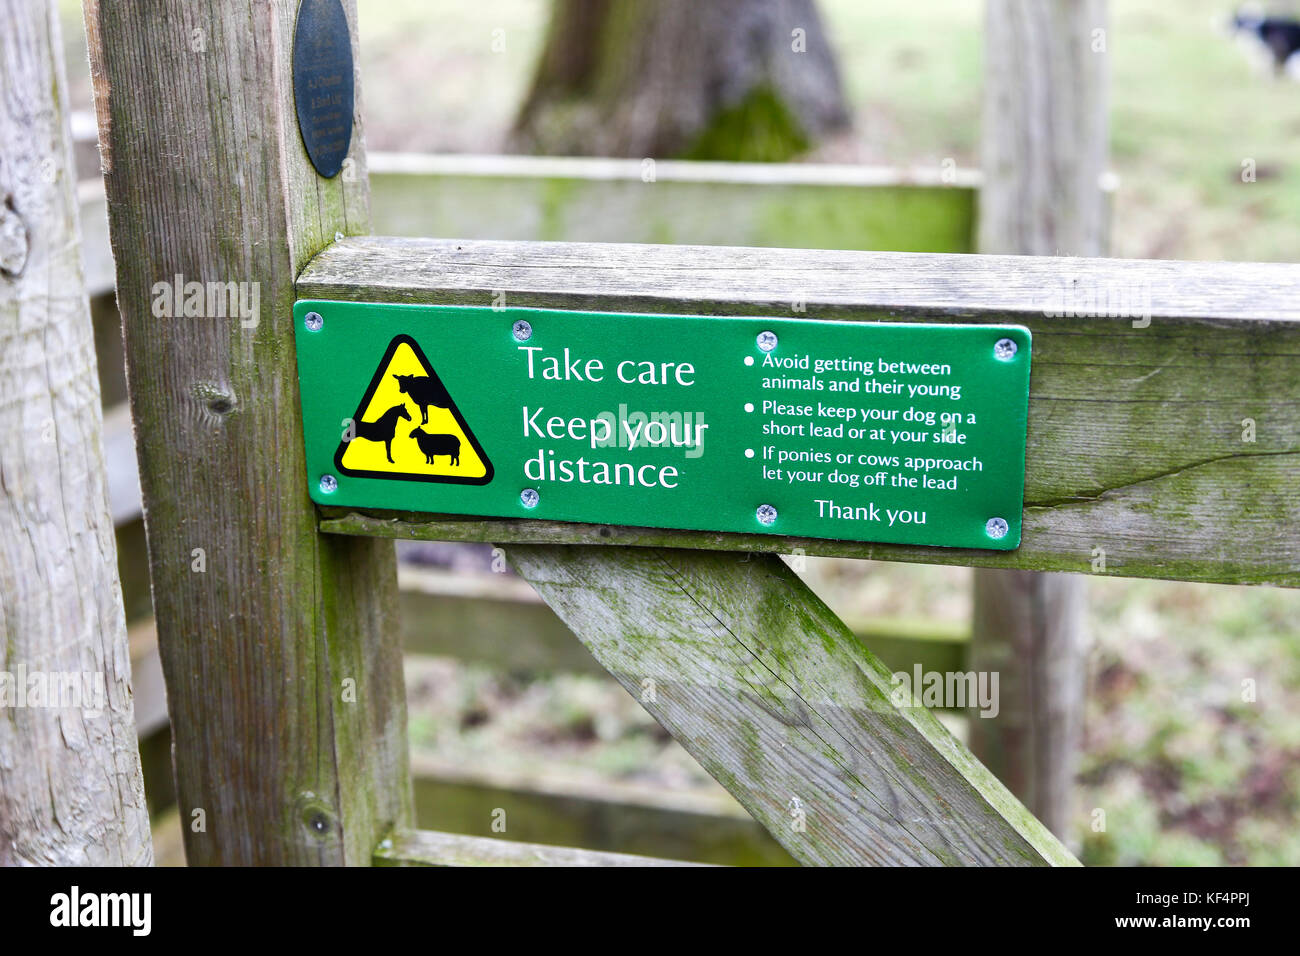 A sign on a gate at Kedleston Hall, Kedleston, Derbyshire, England, UK saying take care, keep your distance from - Stock Image